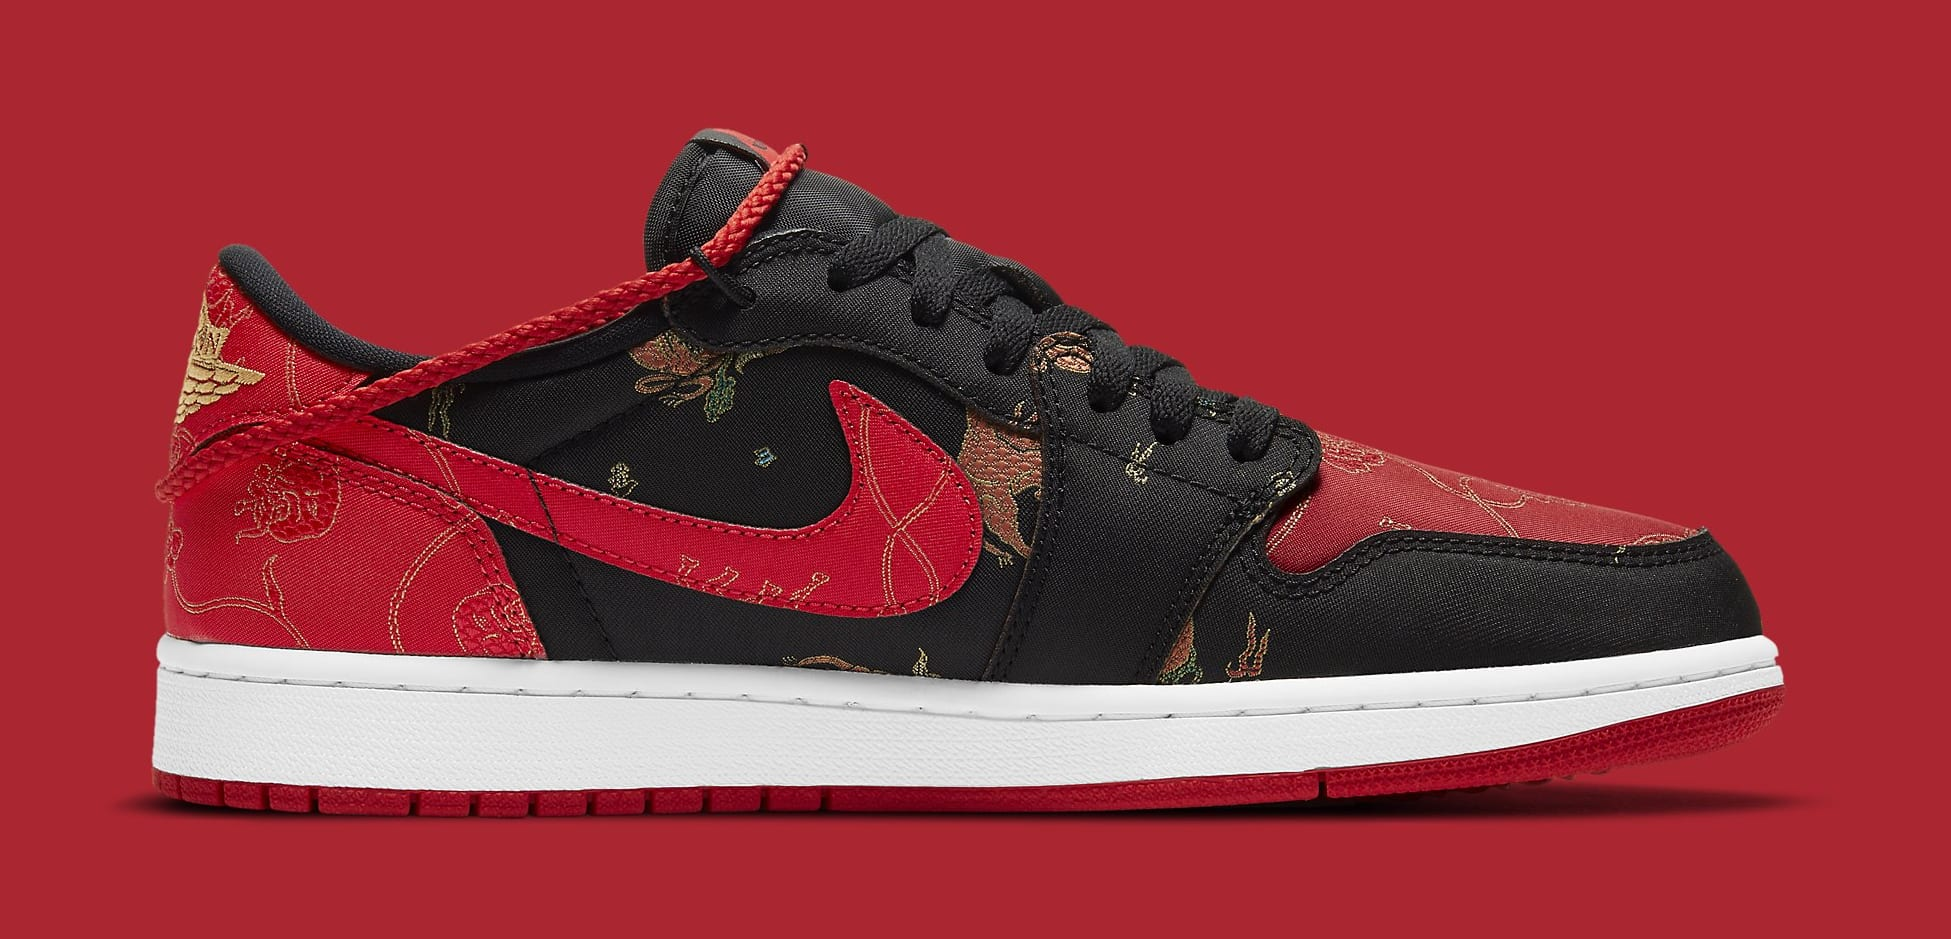 Air Jordan 1 Retro Low OG 'Chinese New Year' DD2233-001 Medial